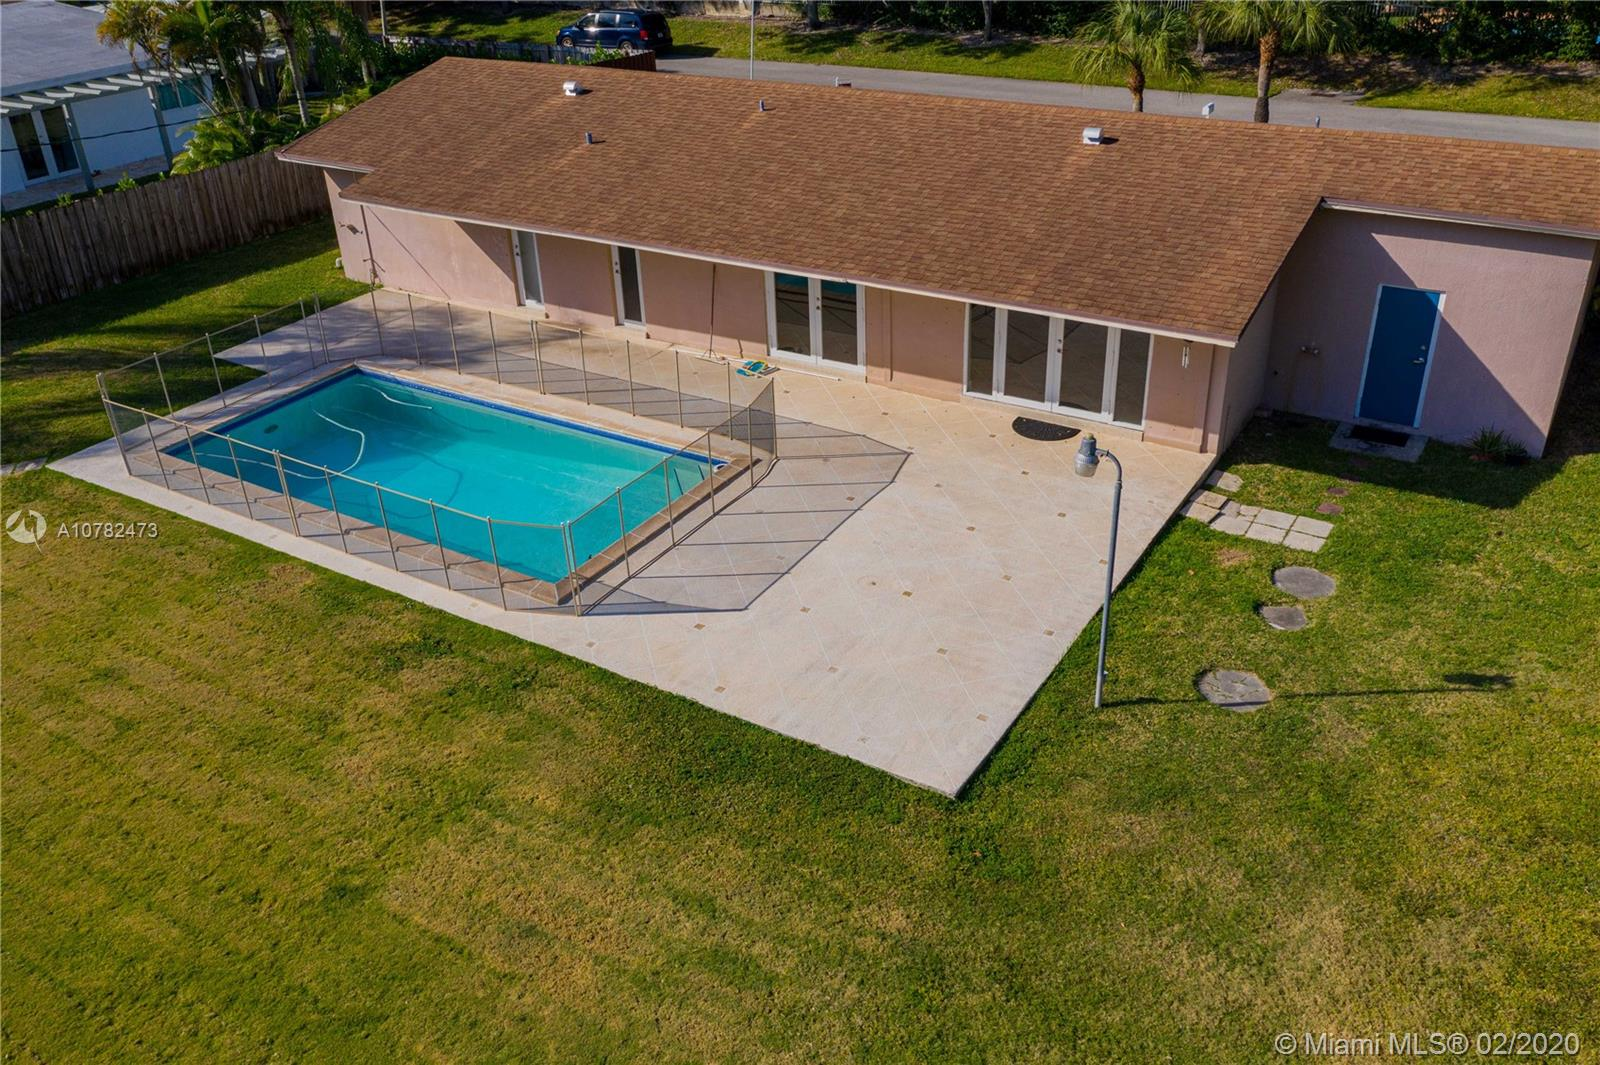 12455 SW 94th Ave, Kendall in Miami-dade County County, FL 33176 Home for Sale